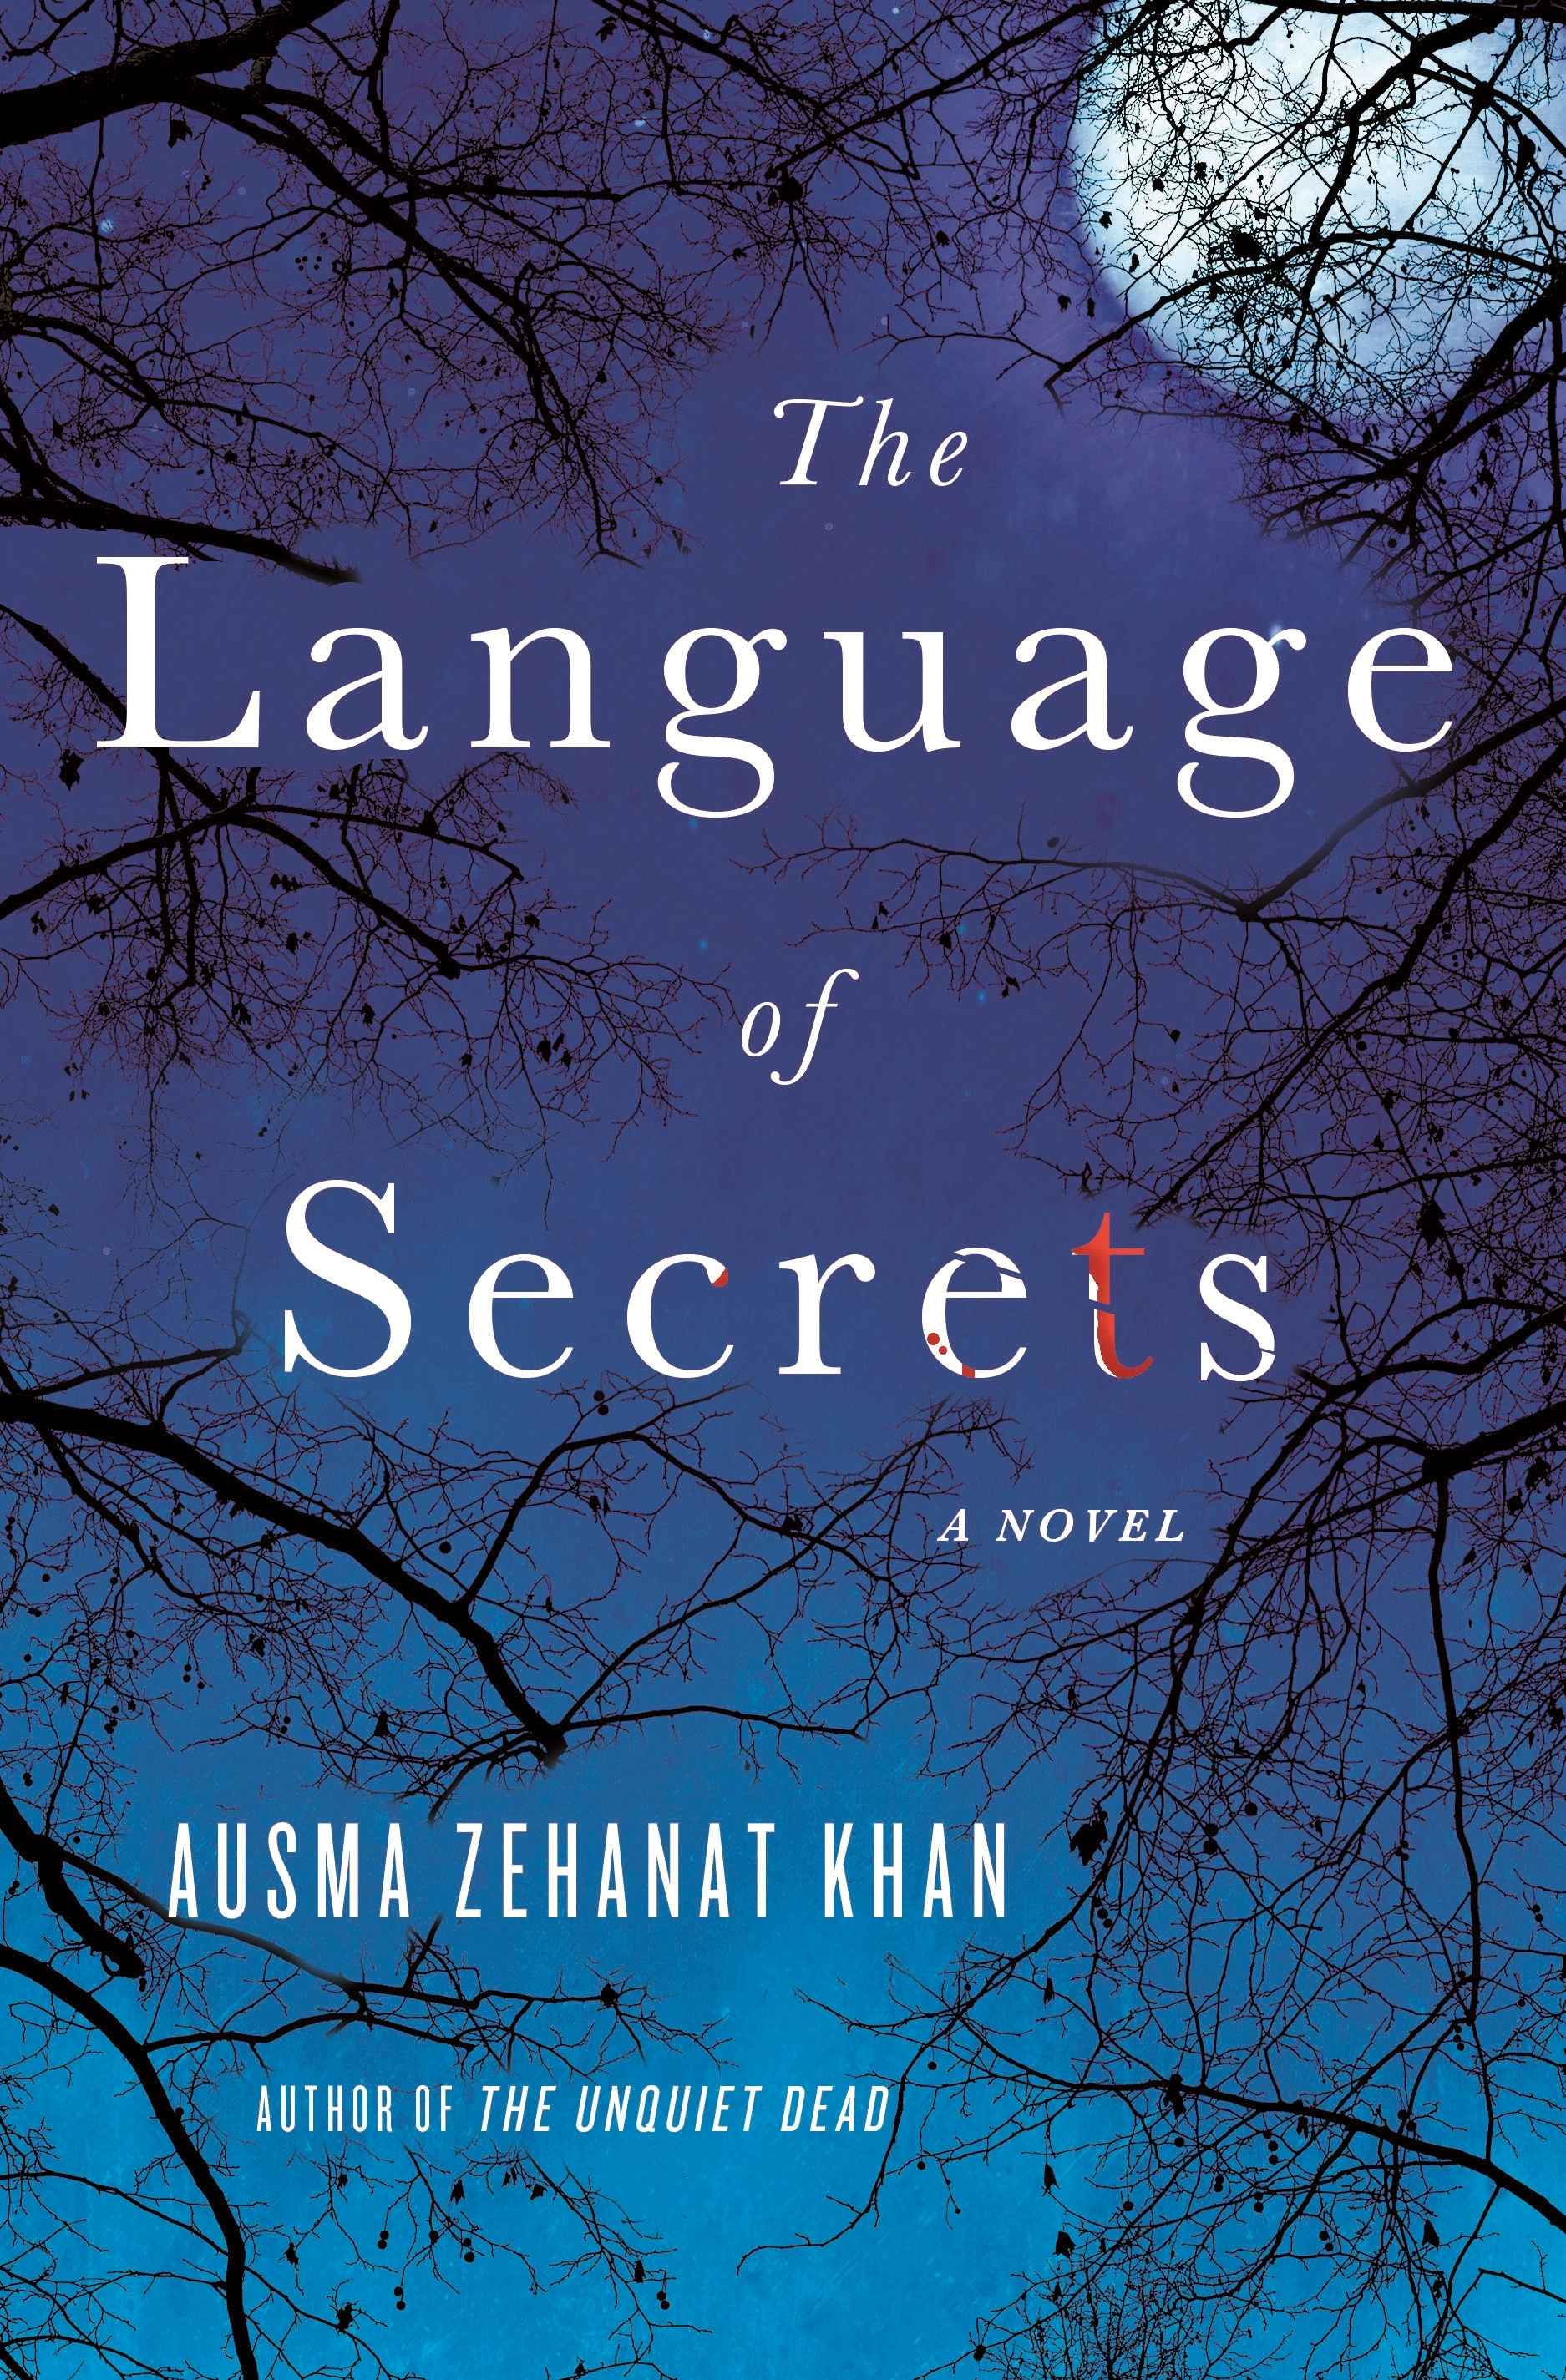 Image result for the language of secrets by ausma zehanat khan""